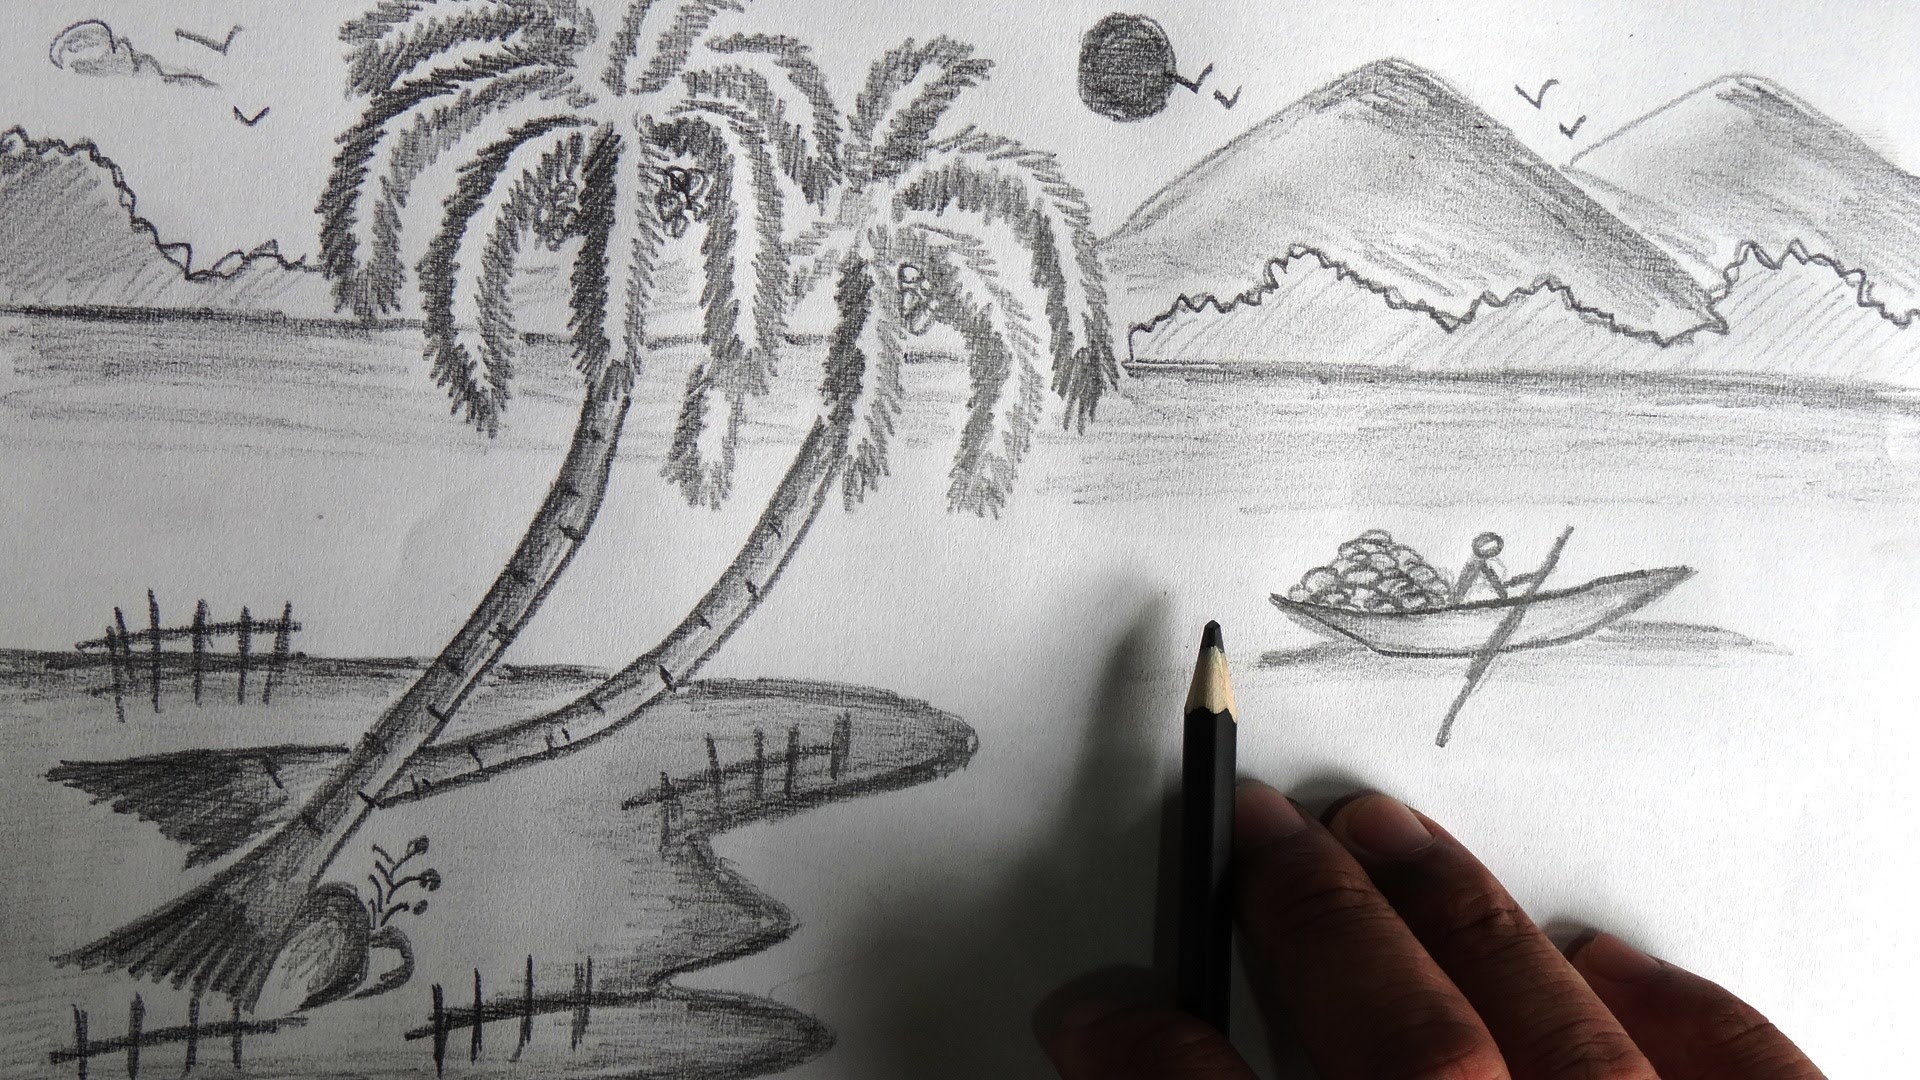 Drawn scenery shading  Images About Of Drawings